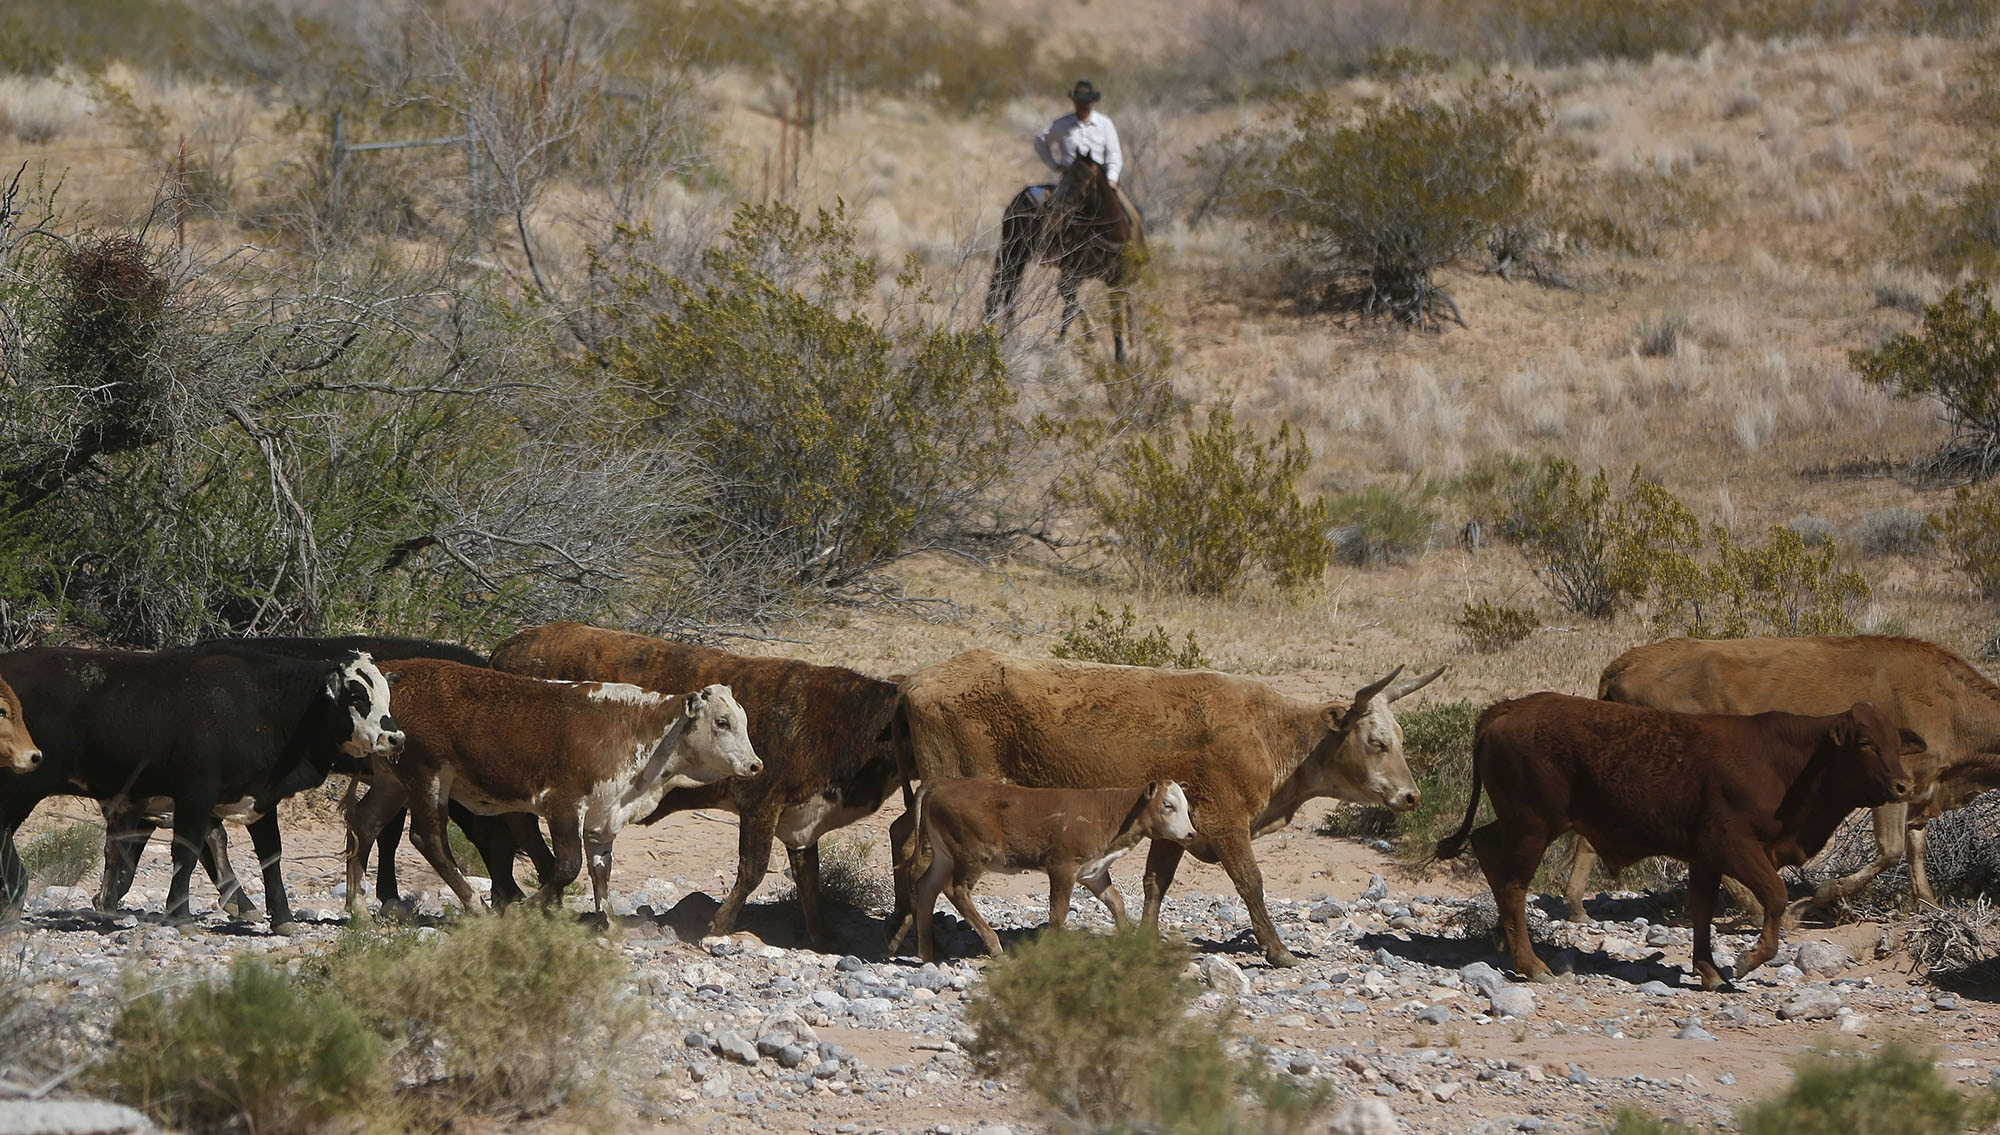 Cattle that belongs to rancher Cliven Bundy are released near Bunkerville, Nevada April 12, 2014. U.S. officials ended a stand-off with hundreds of armed protesters in the Nevada desert on Saturday, calling off the government's roundup of cattle it said were illegally grazing on federal land and giving about 300 animals back to rancher Bundy who owned them. REUTERS/Jim Urquhart   (UNITED STATES - Tags: POLITICS ANIMALS BUSINESS CRIME LAW CIVIL UNREST) - RTR3L0IV